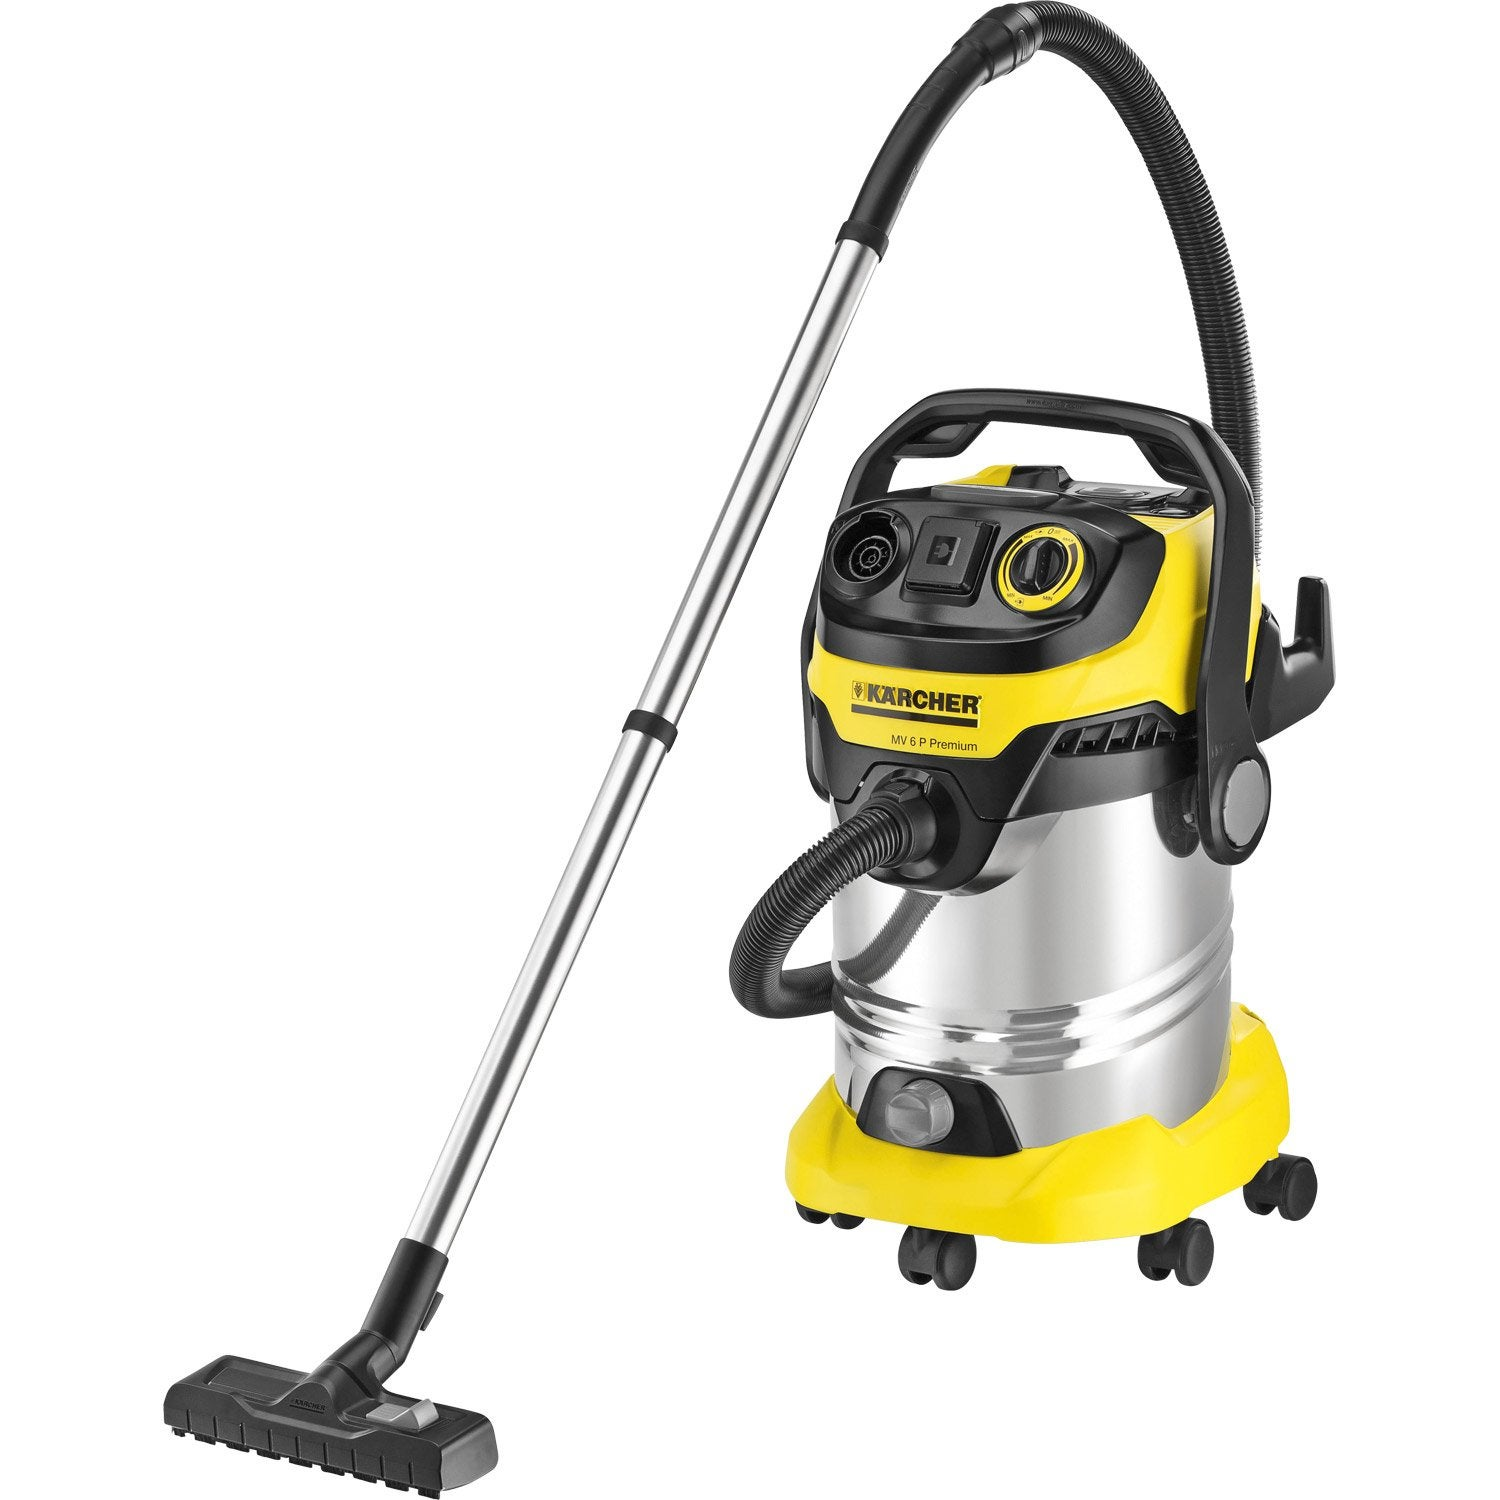 aspirateur eau poussi res et gravats karcher wd6 premium 23 kpa 30 l leroy merlin. Black Bedroom Furniture Sets. Home Design Ideas